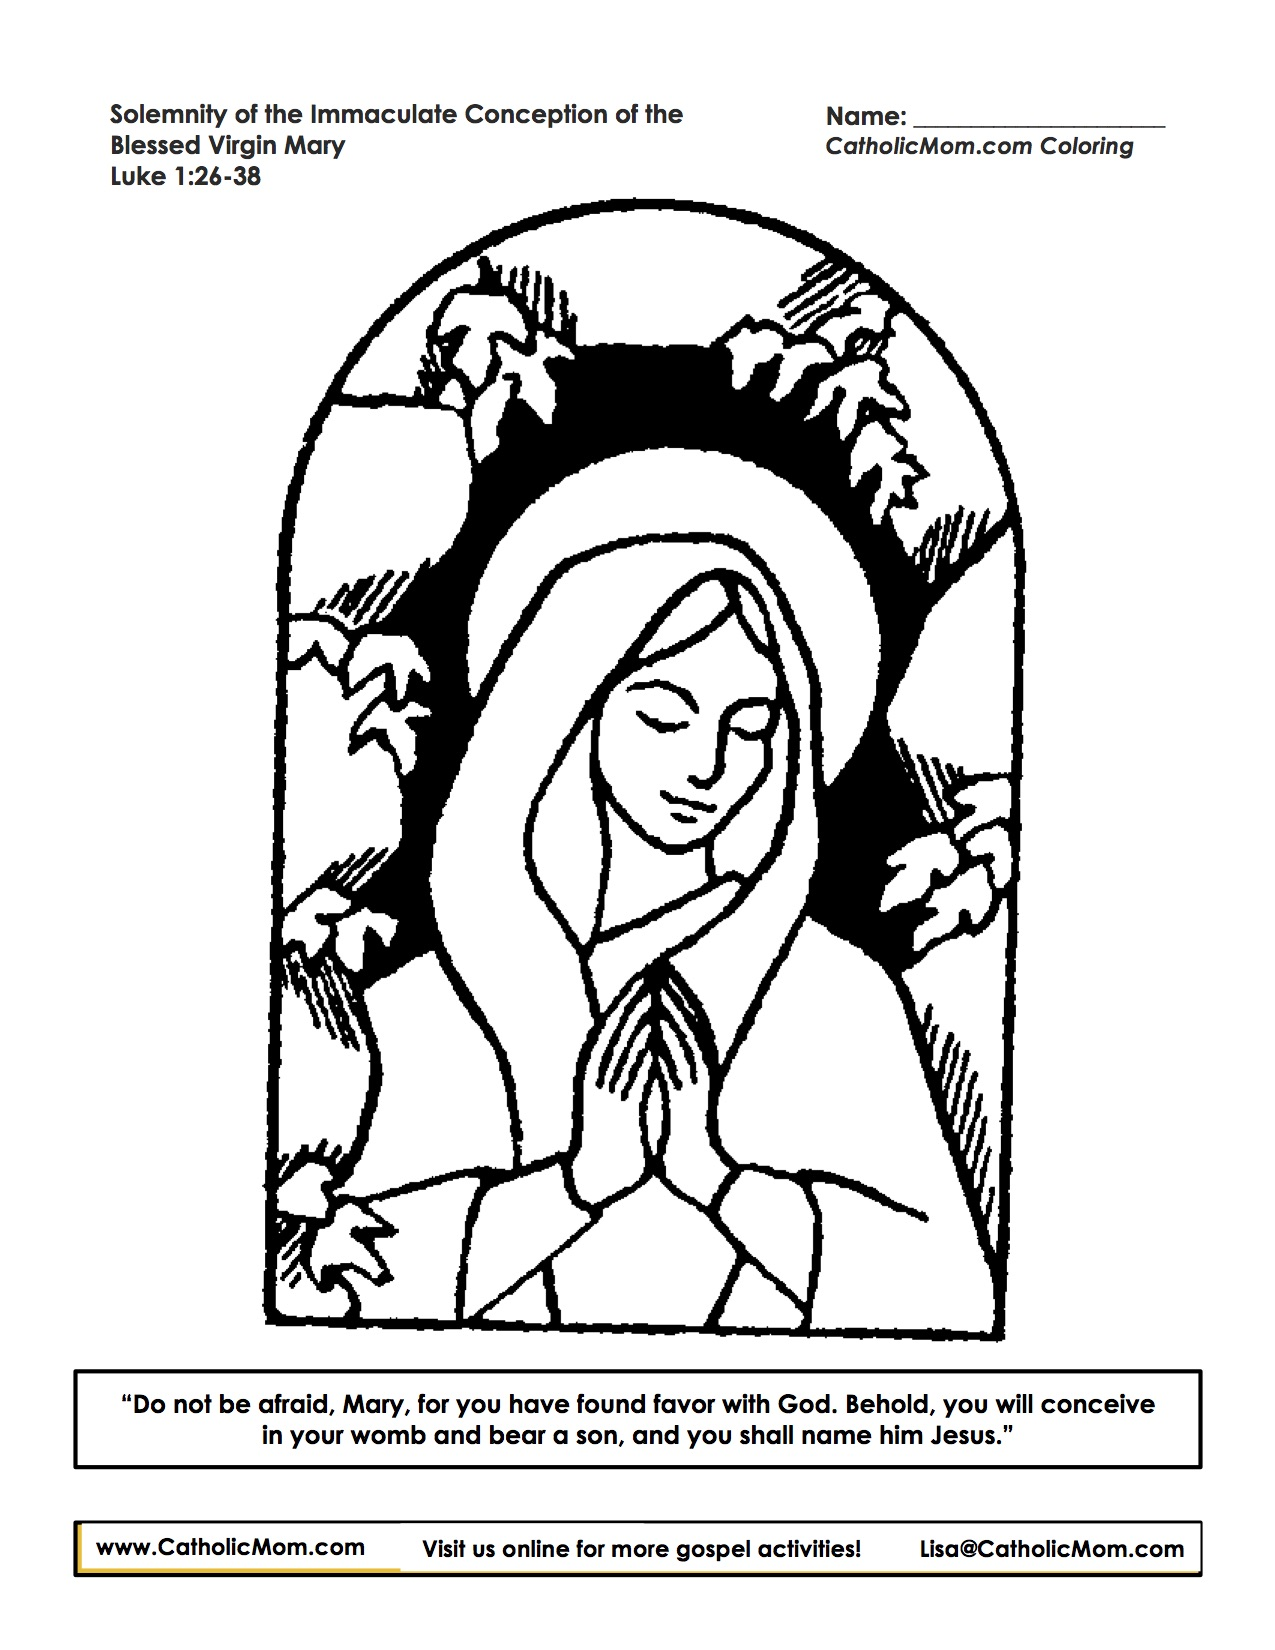 Immaculate_Conception_Coloring_Page_01